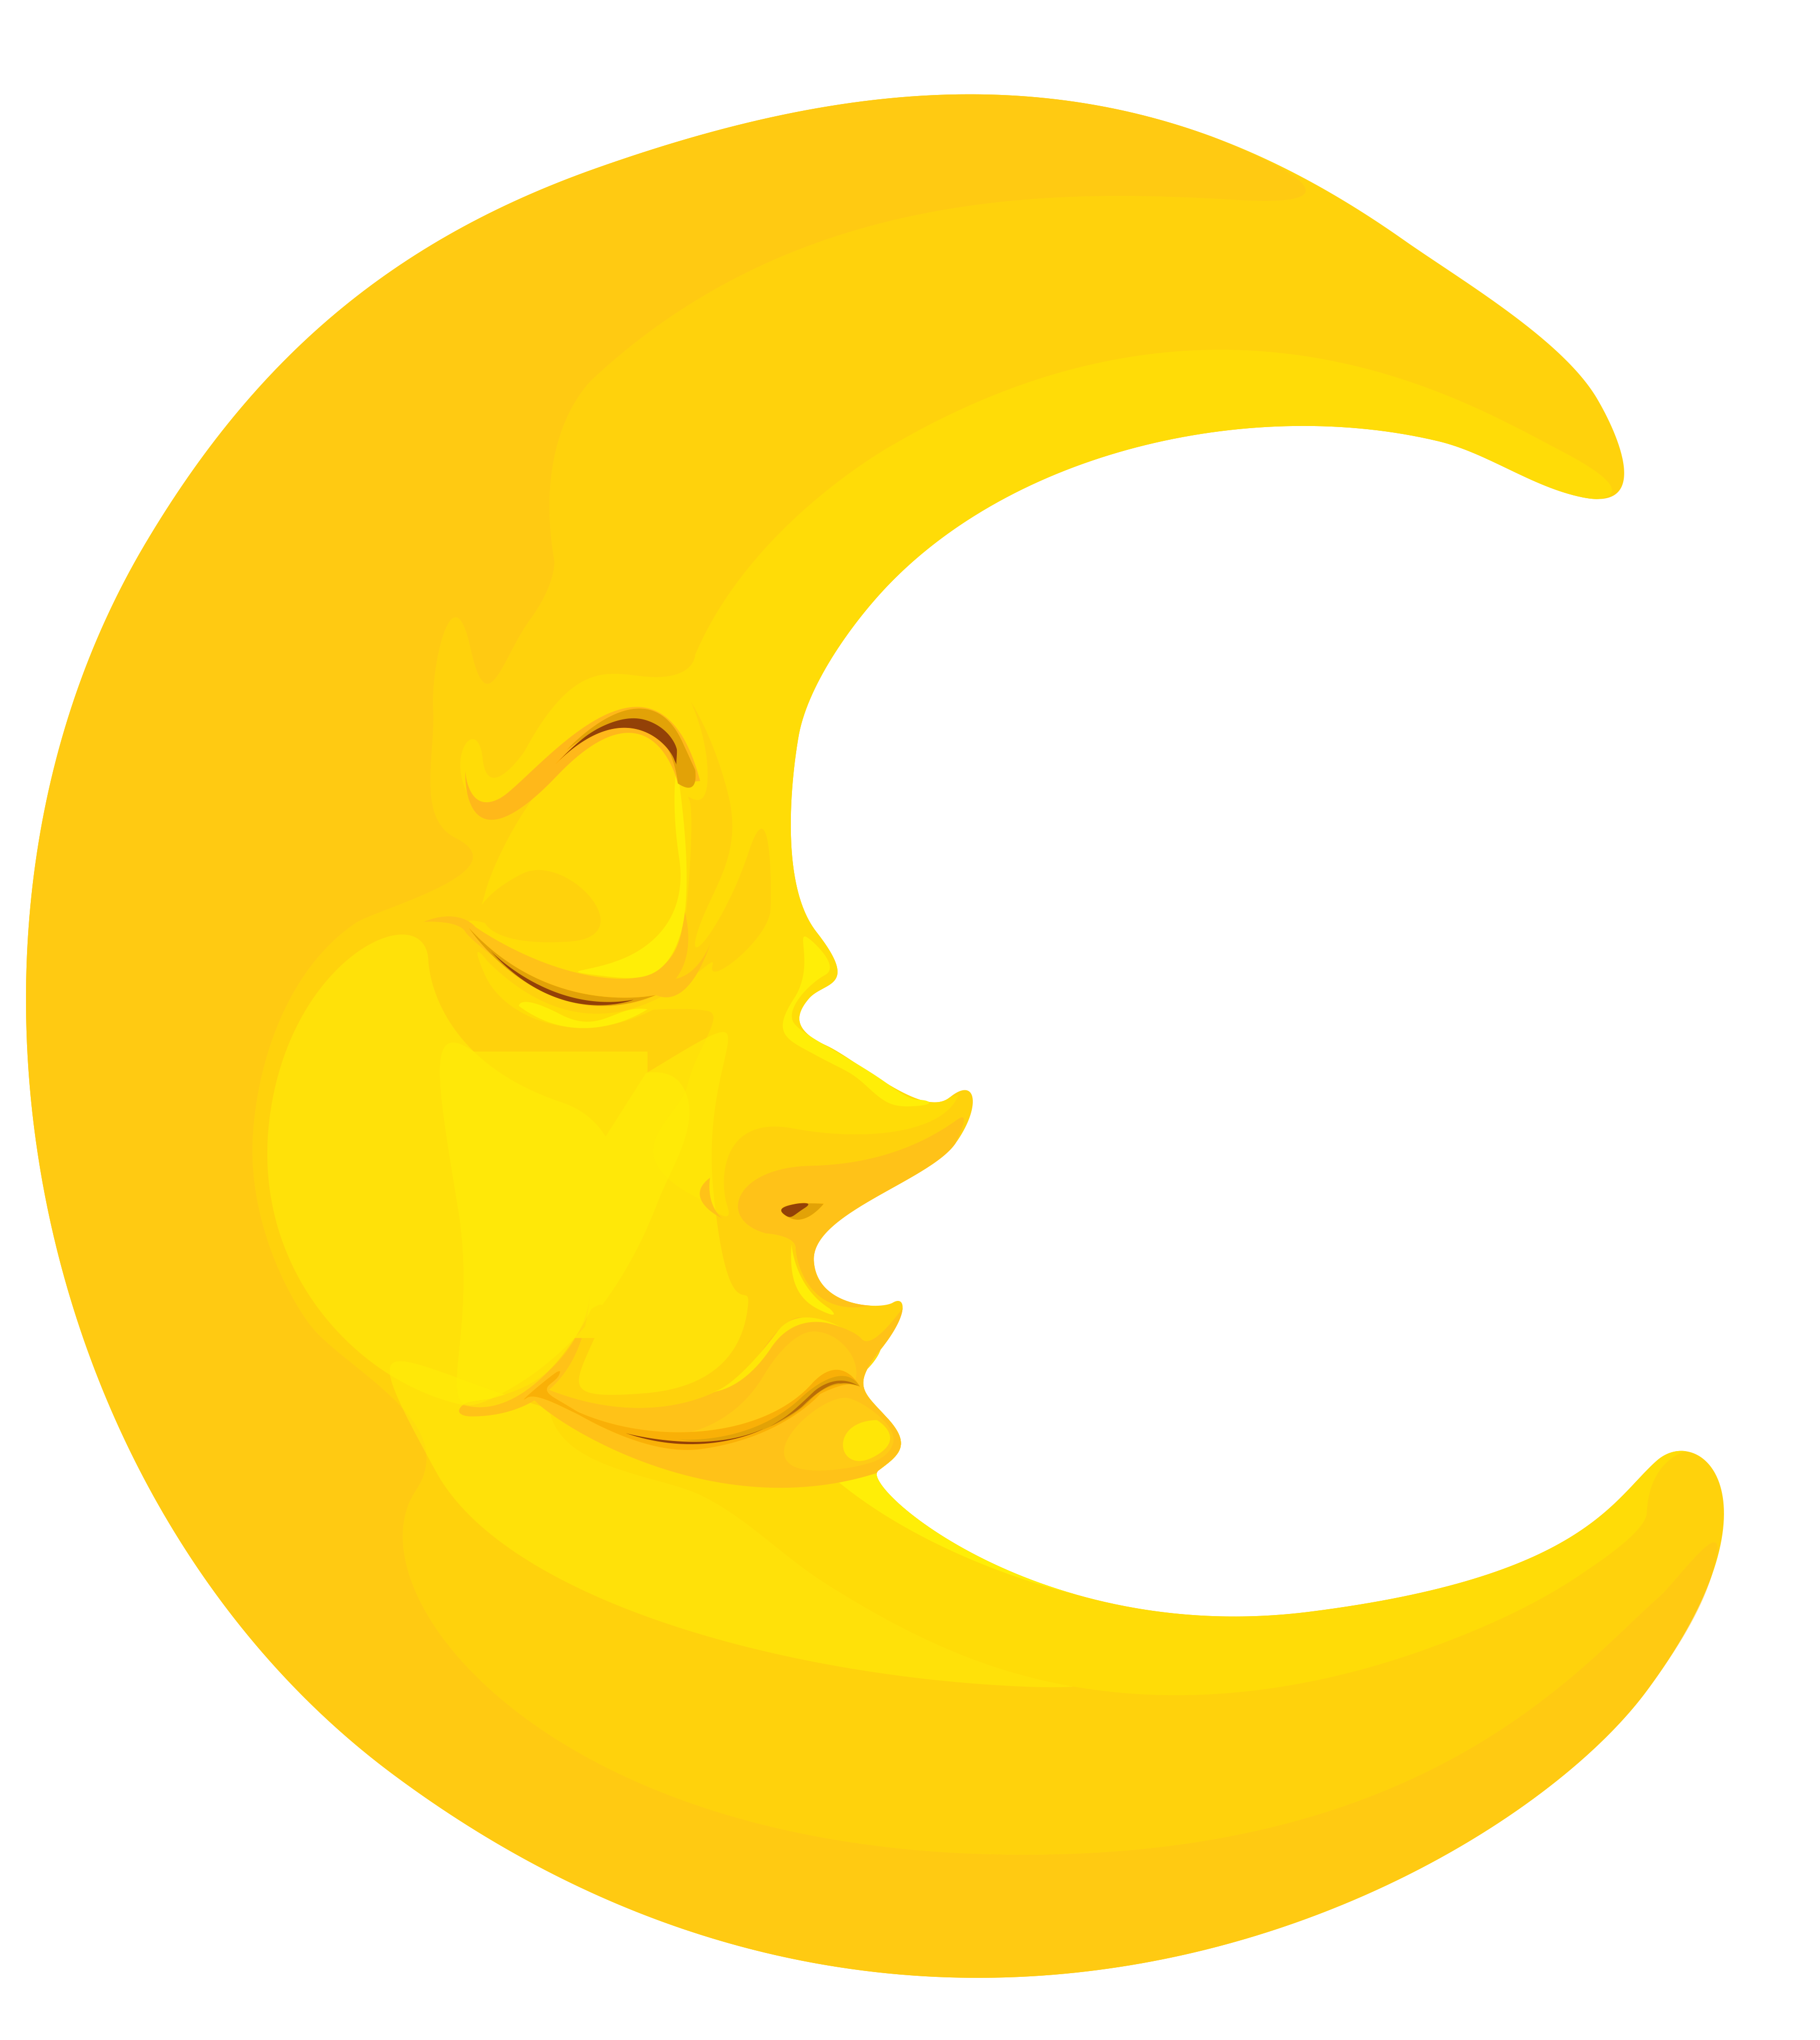 3431x3845 Moon Clip Art Free Free Clipart Images 2